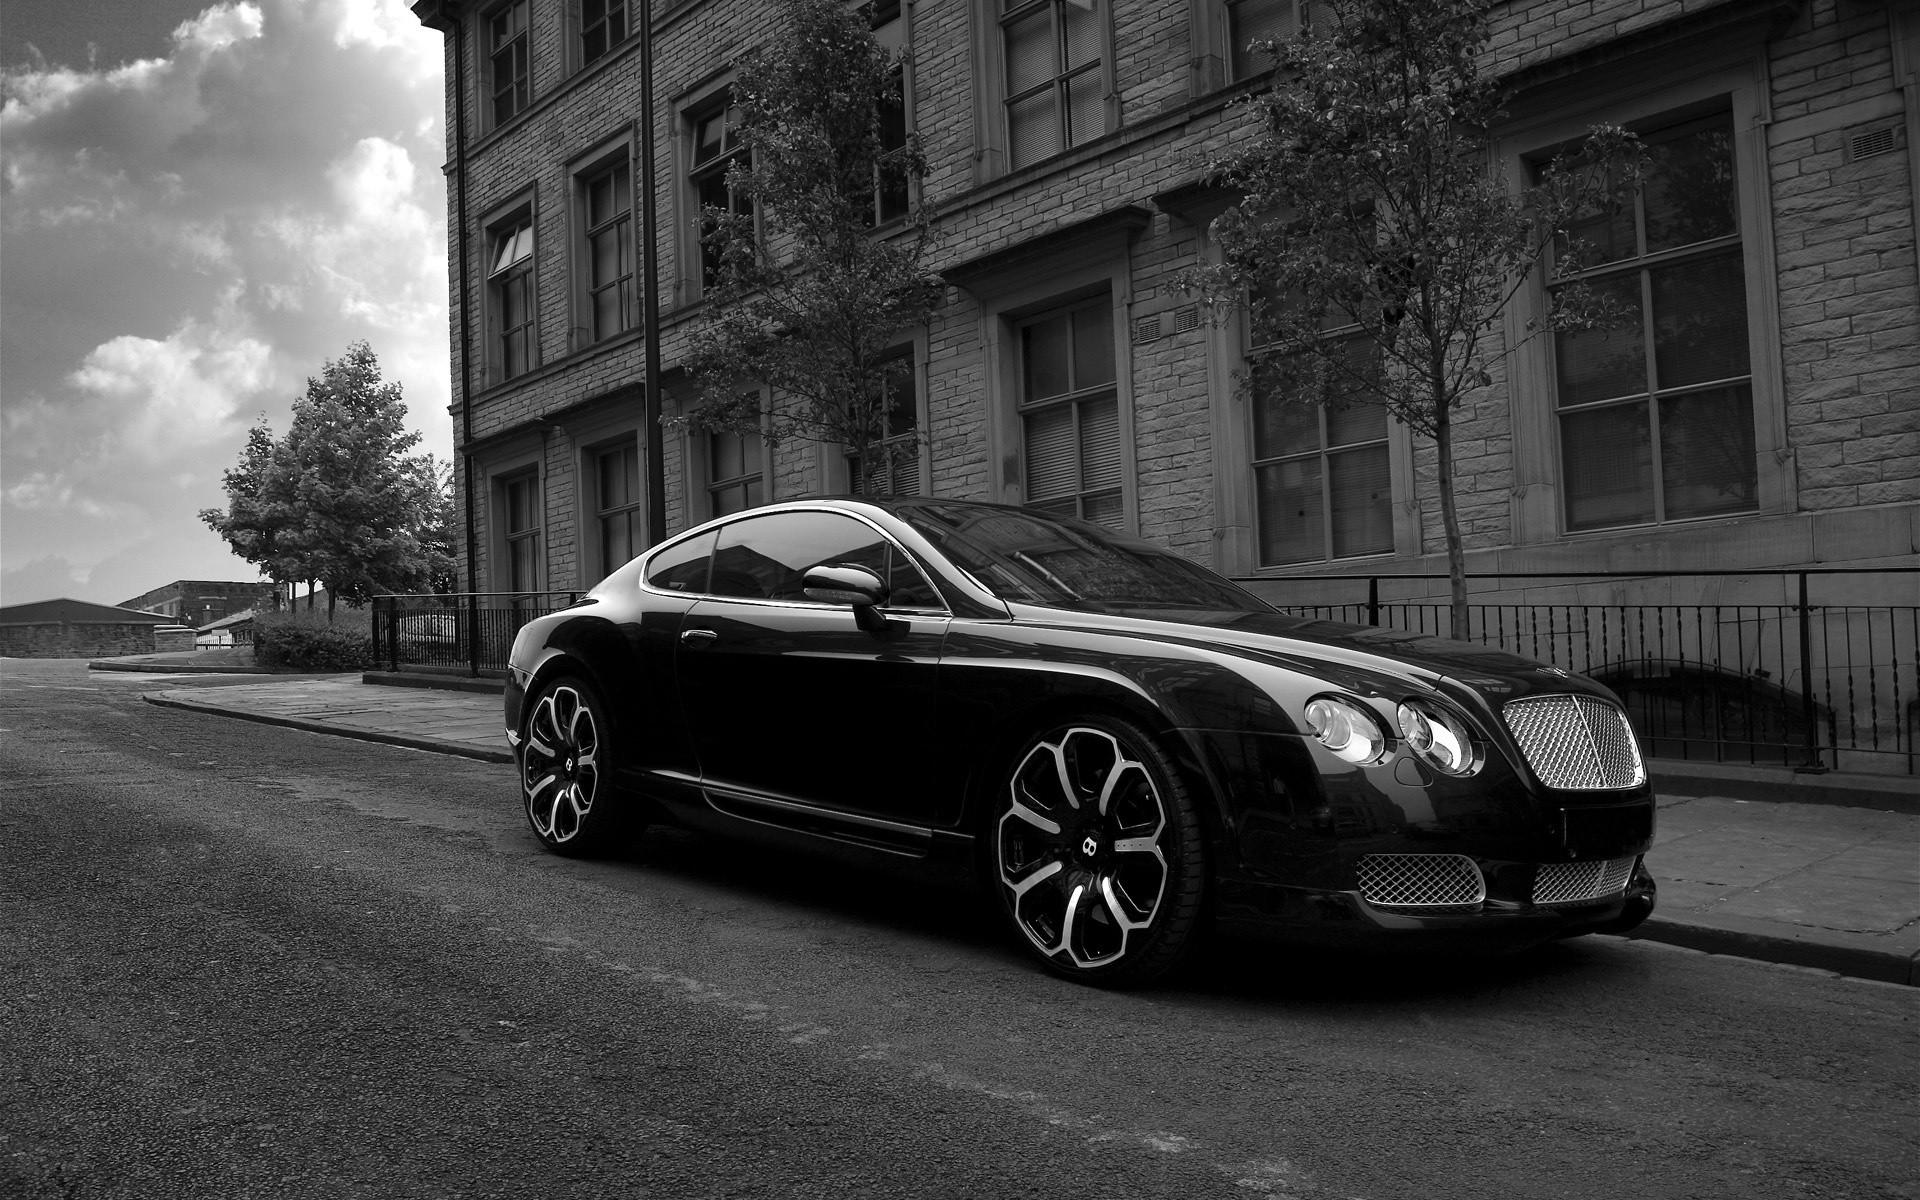 Bentley GTS Black Edition Project Kahn 2008 сторона